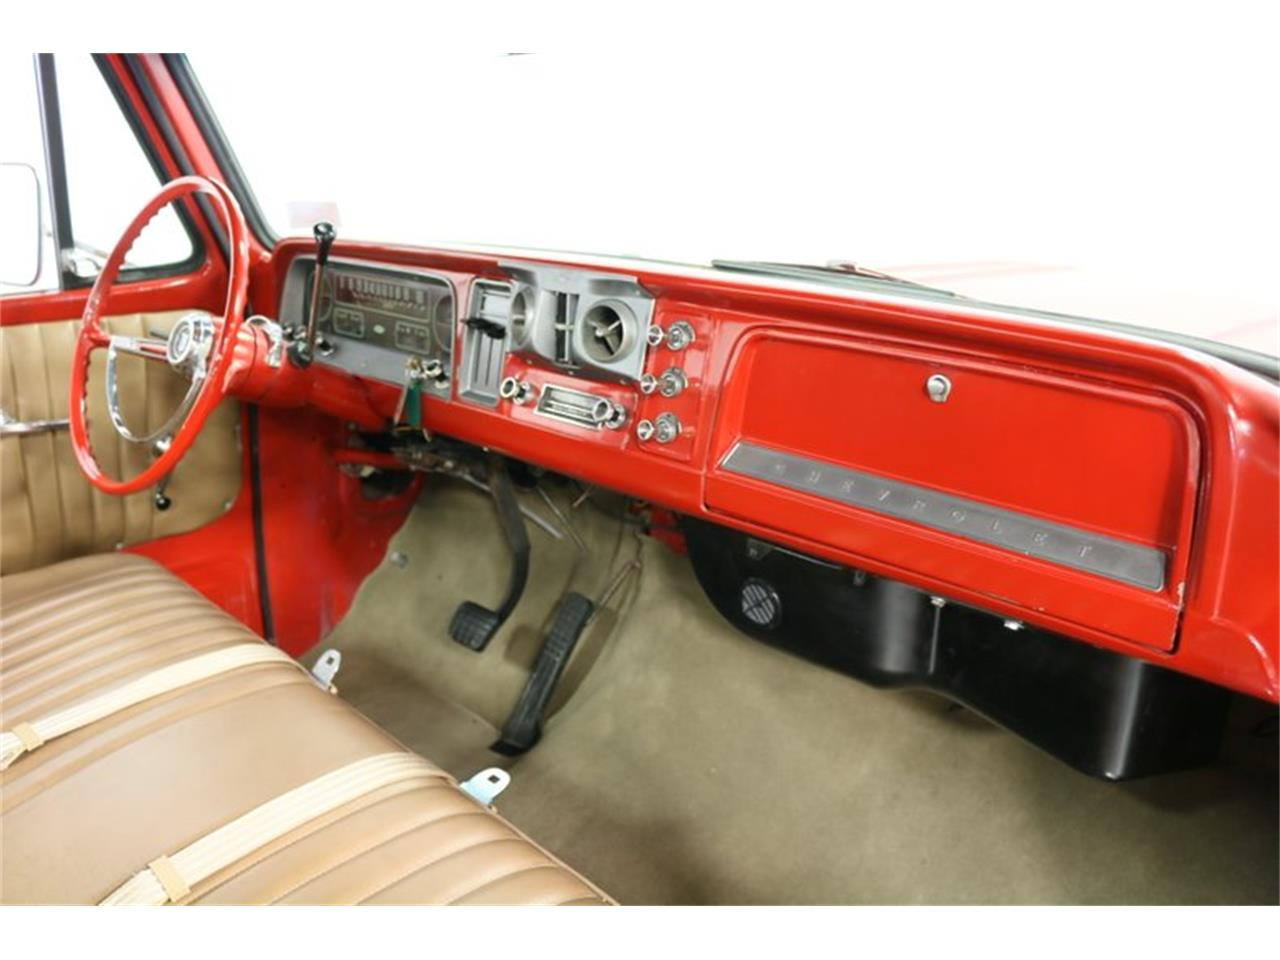 Large Picture of '66 Chevrolet C10 located in Ft Worth Texas - $32,995.00 Offered by Streetside Classics - Dallas / Fort Worth - PVCV